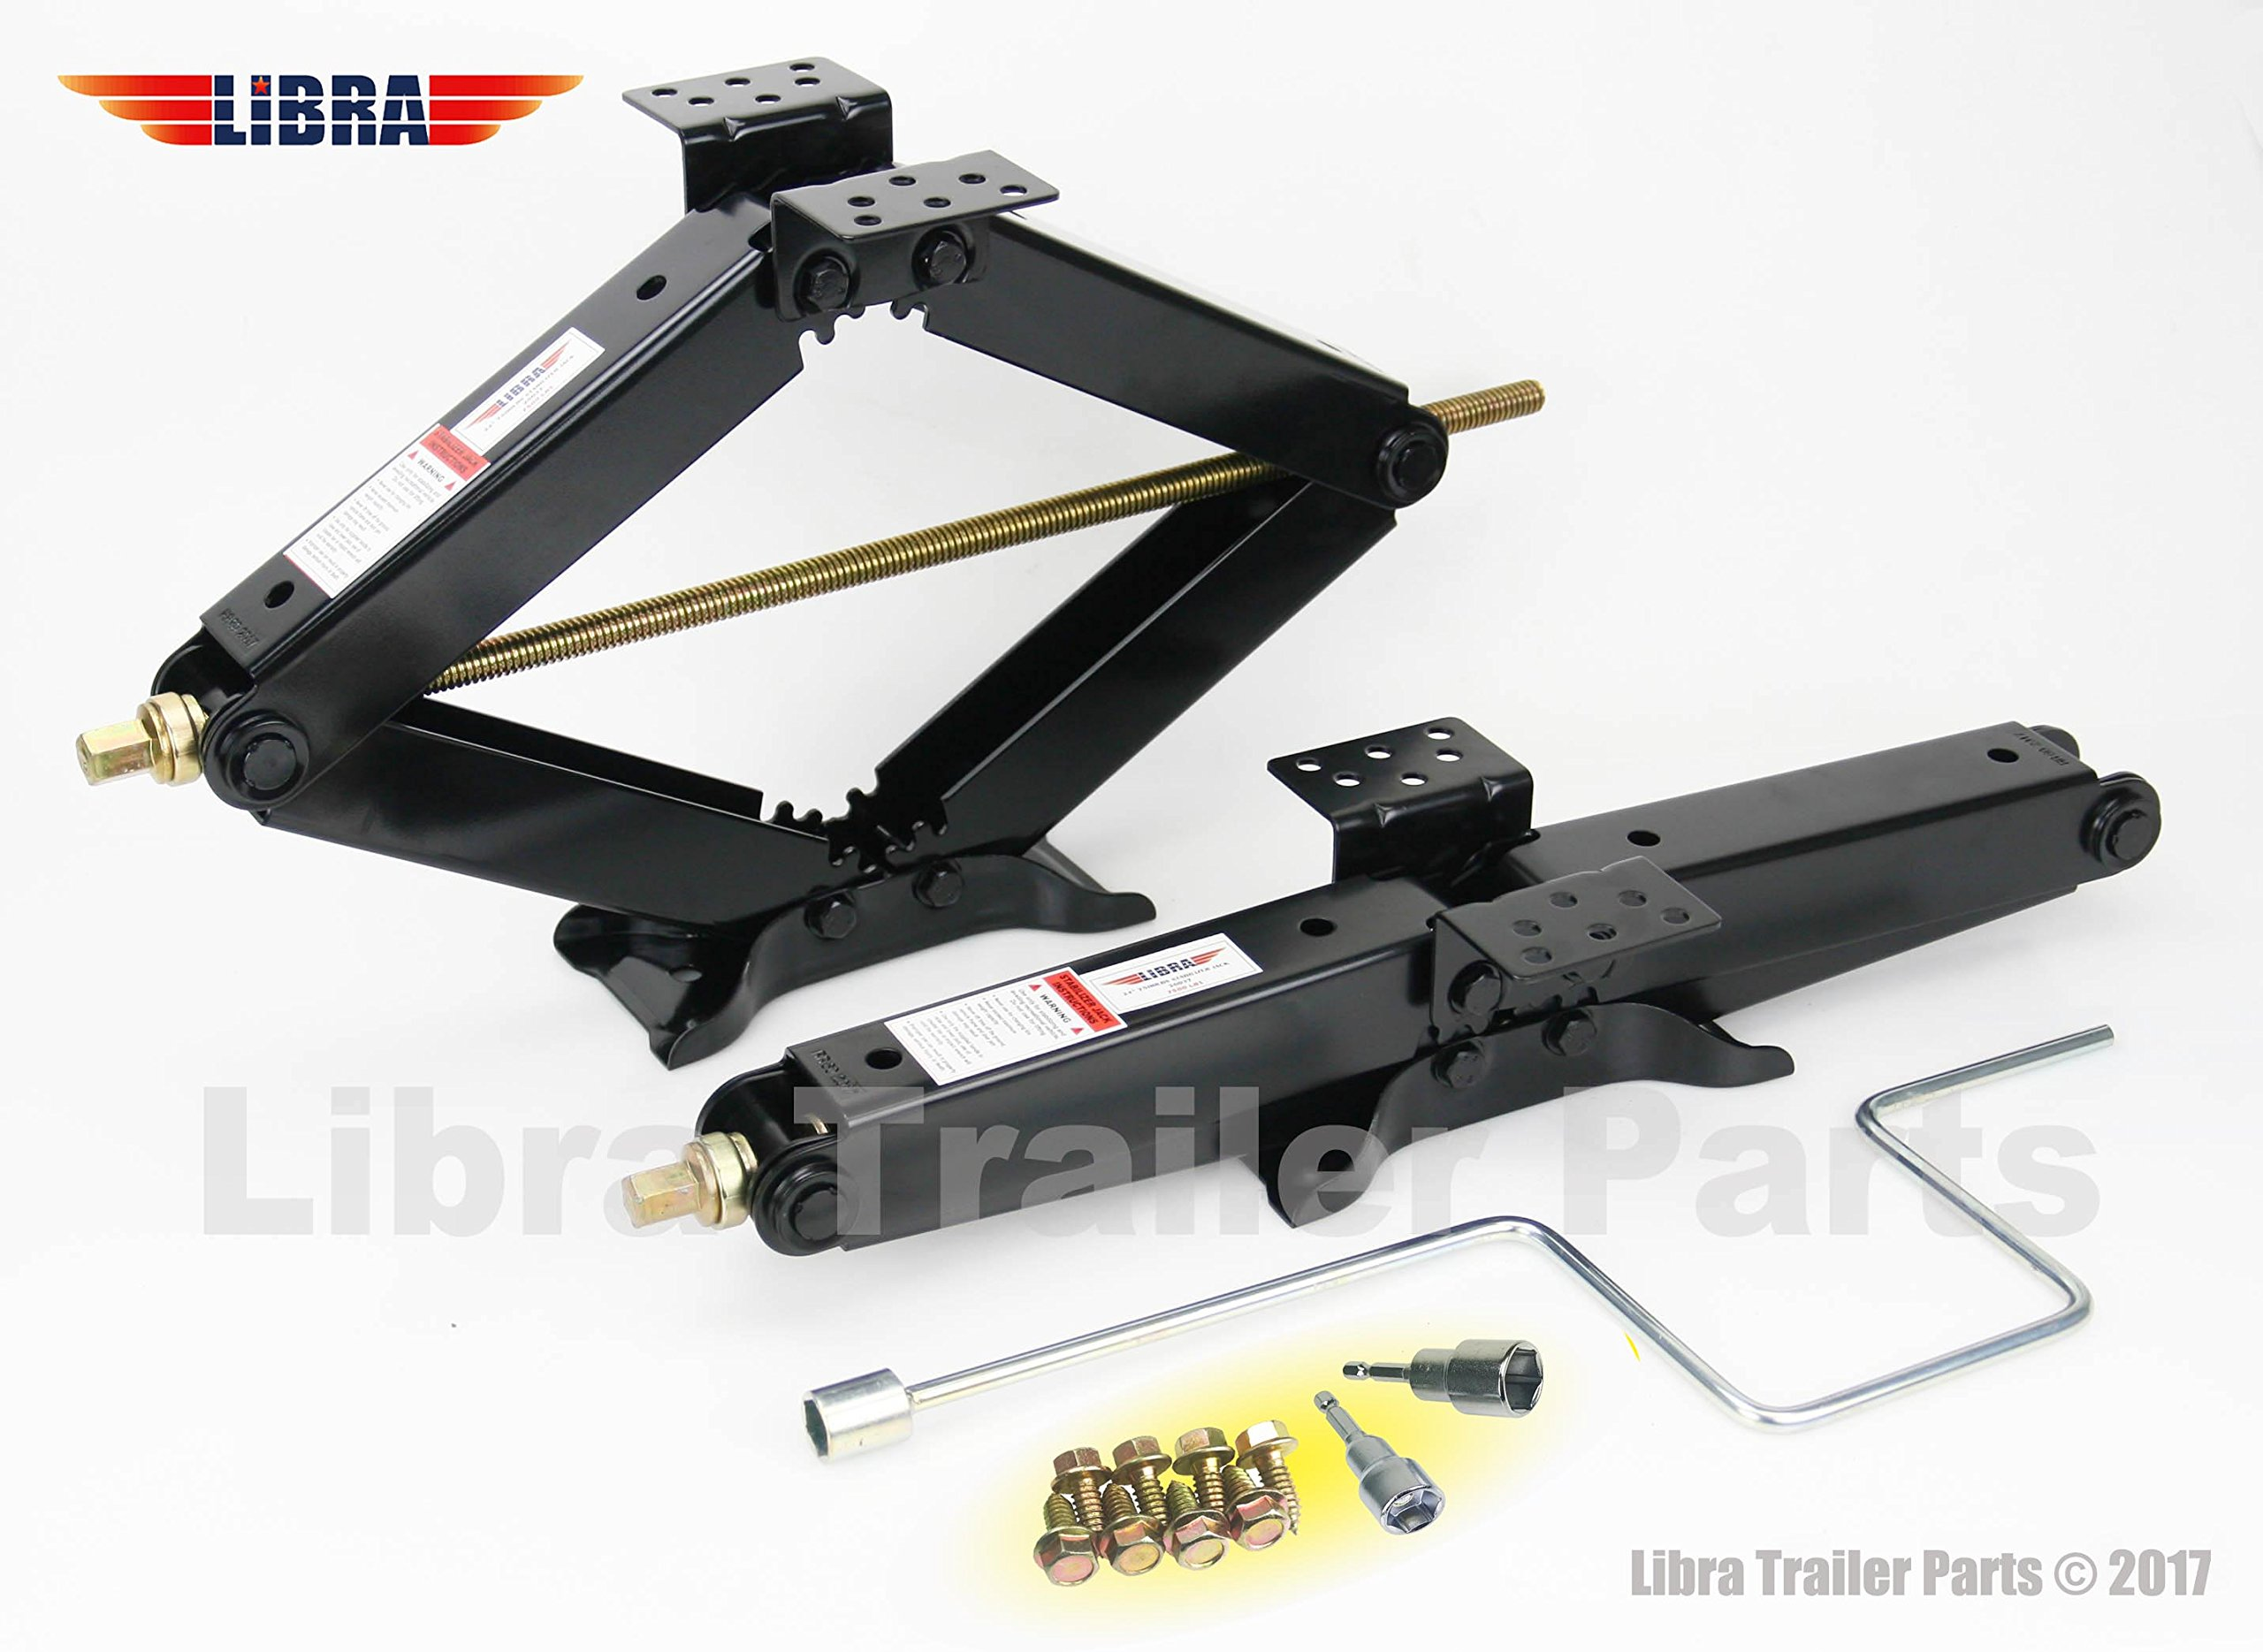 Libra Set of 2 7500 lb Heavy Duty 24'' RV Trailer Stabilizer Leveling Scissor Jacks w/handle & Dual Power Drill Sockets & hardware -Model# 26037 …